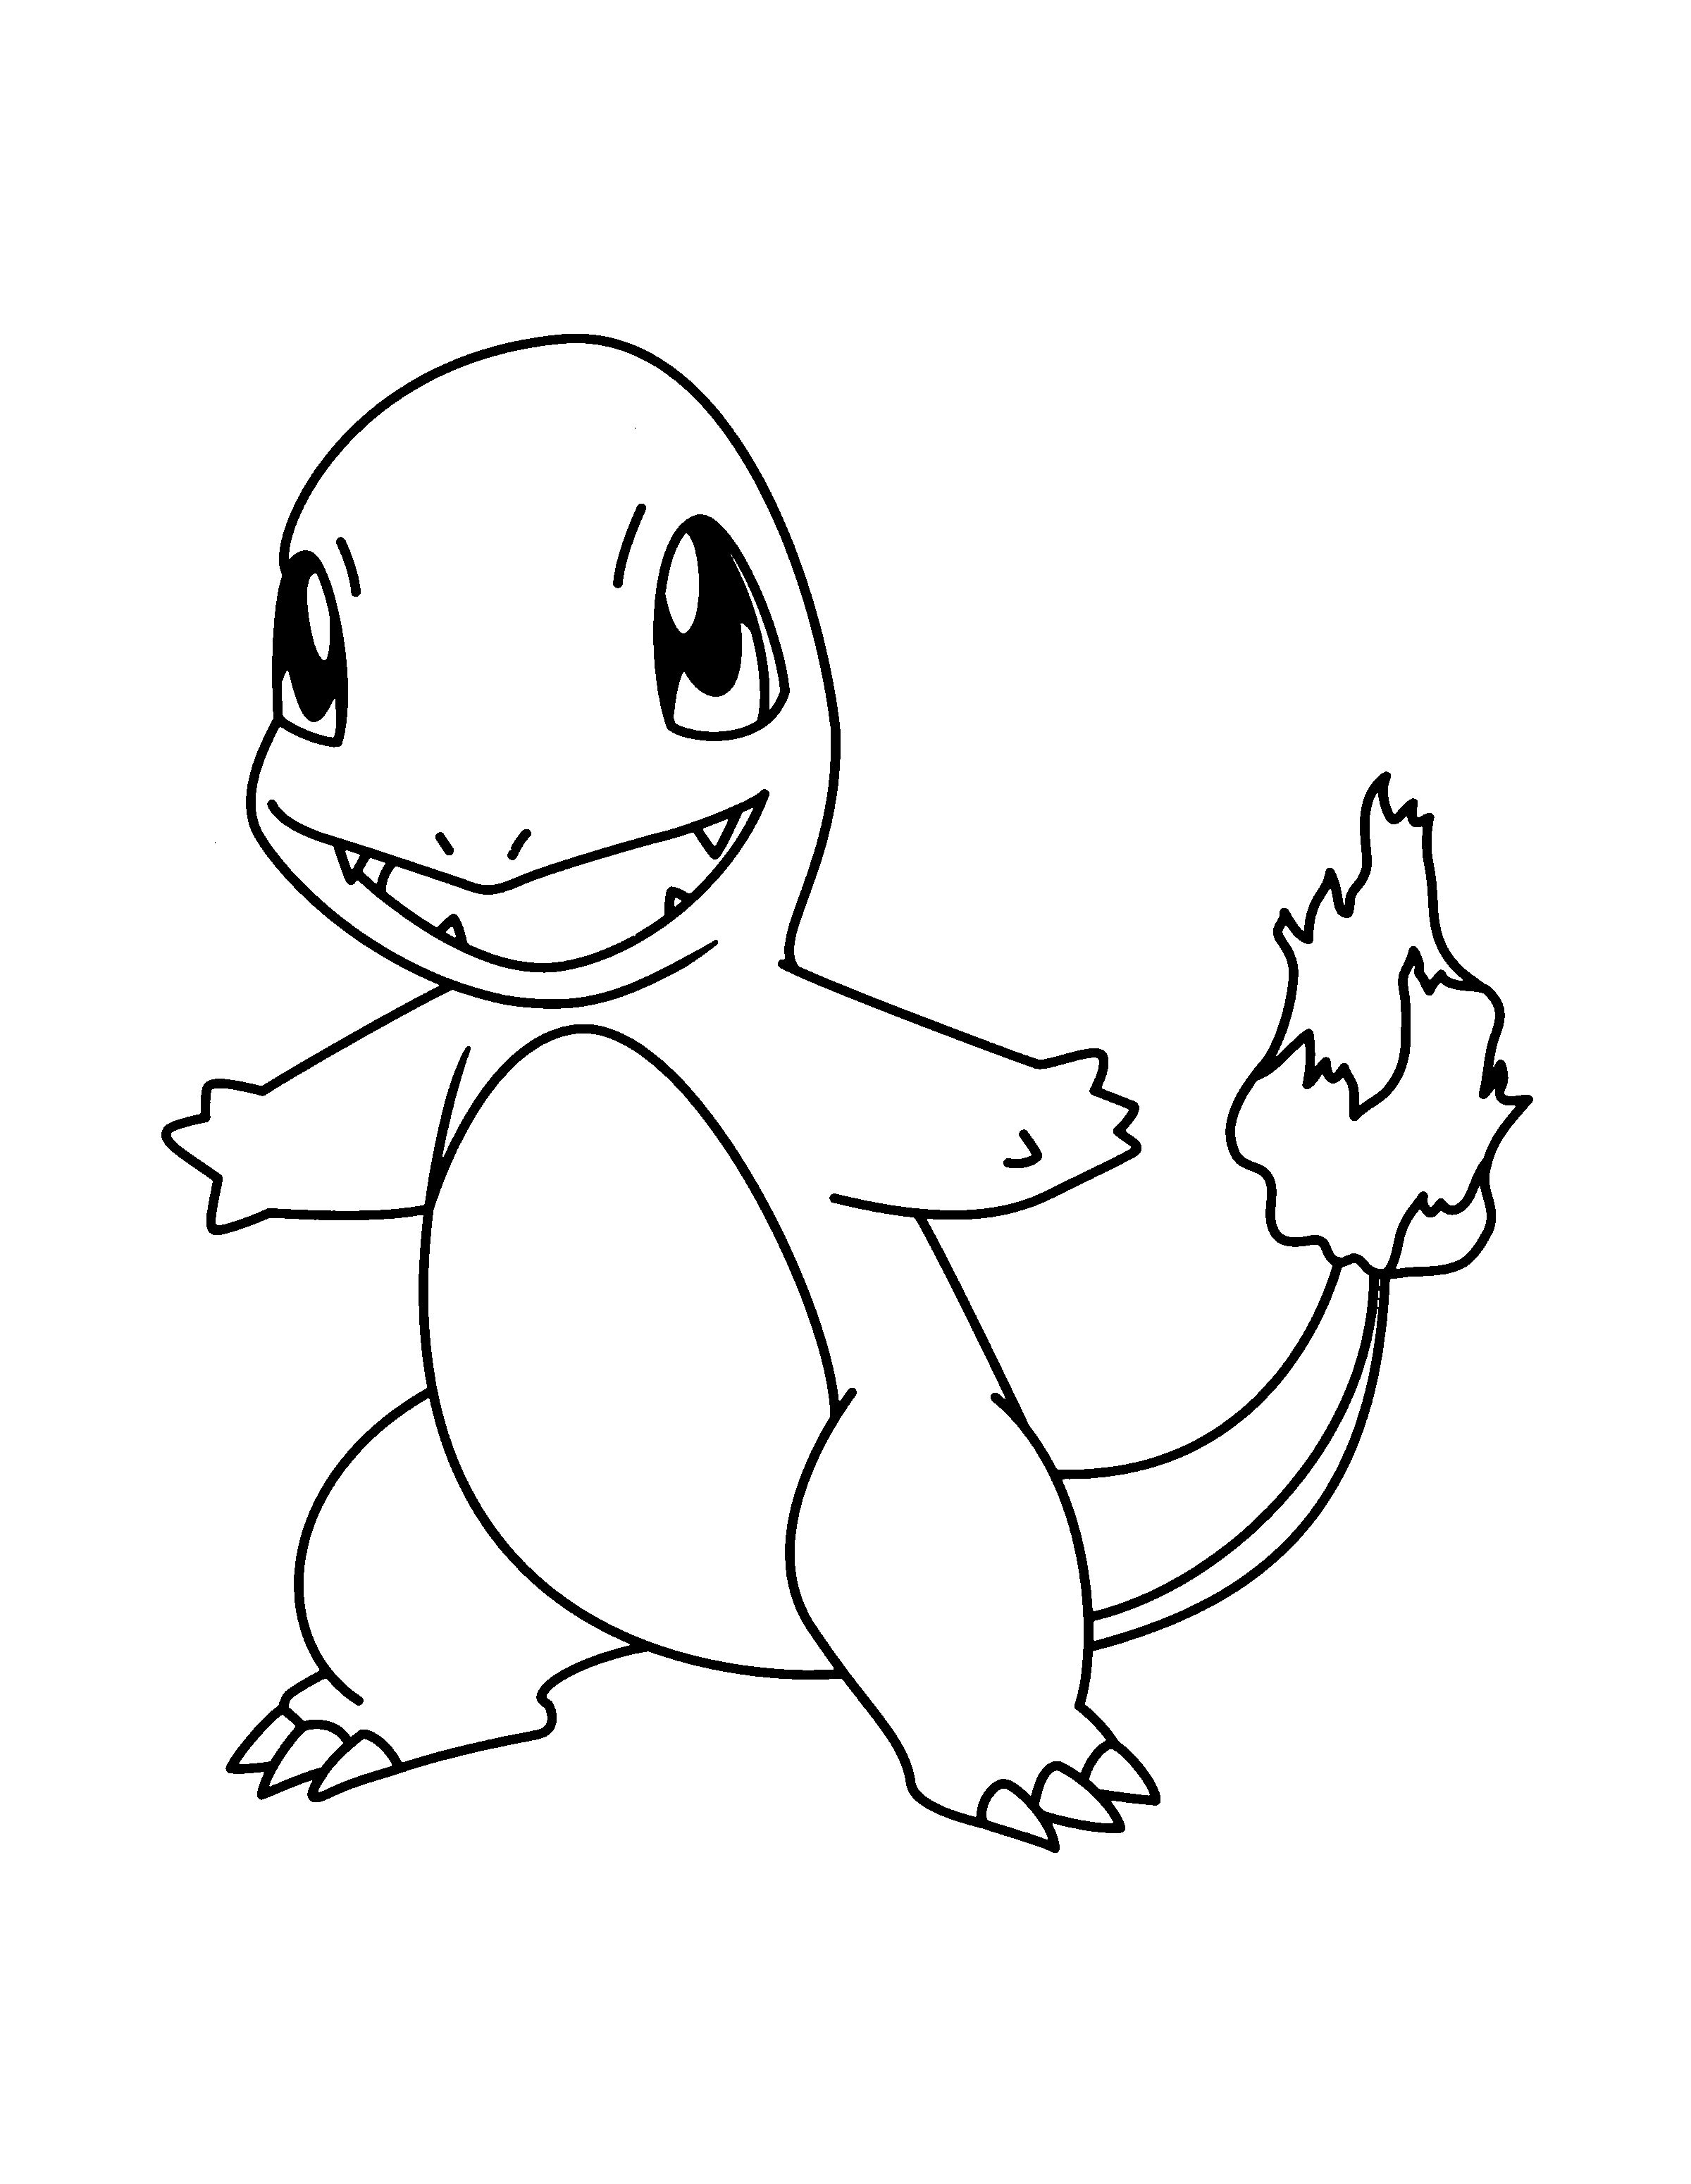 Pokemon Charizard Coloring Pages 528 Pokemon Coloring Pages